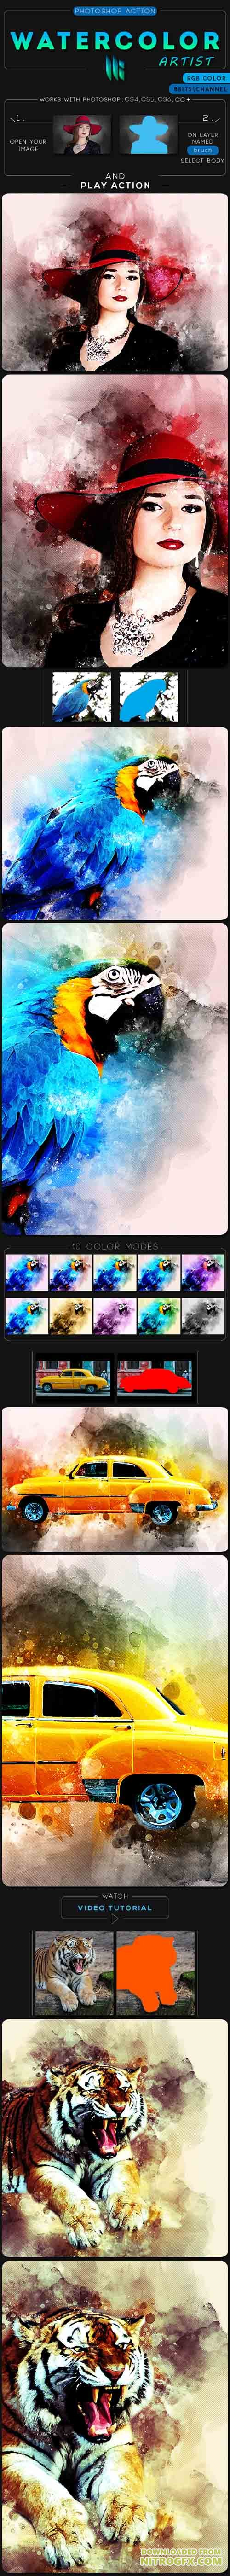 GraphicRiver - Watercolor Artist Photoshop Action 20649591